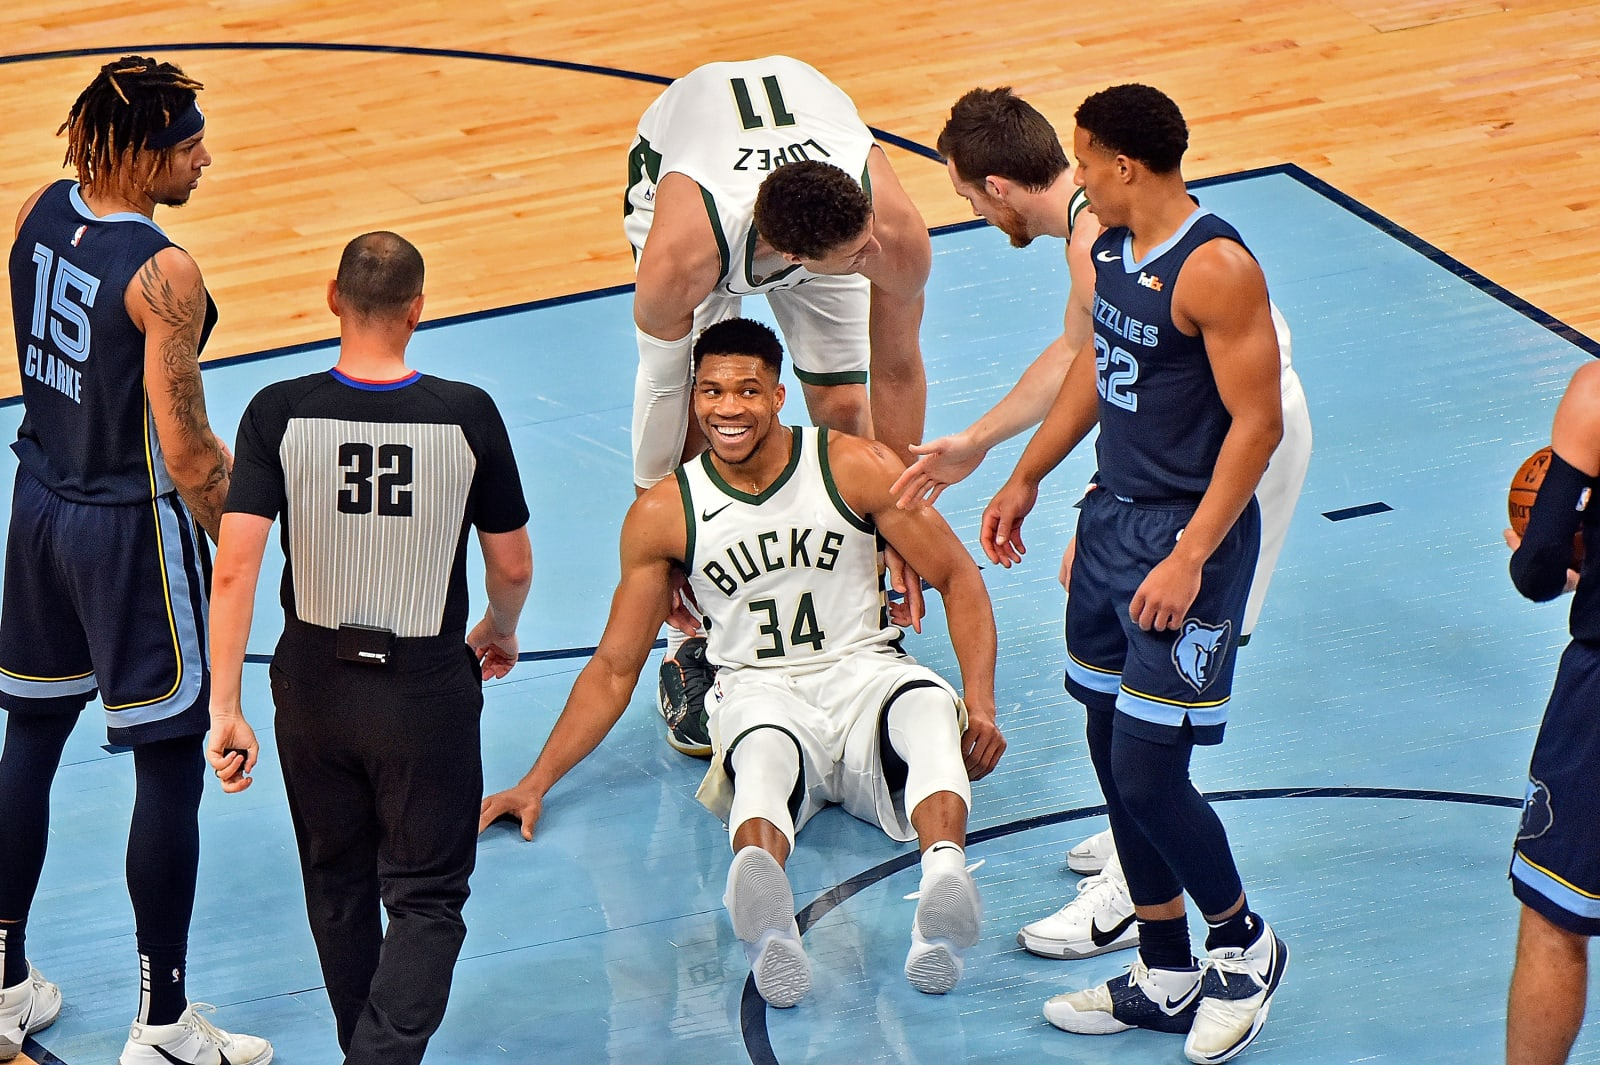 Milwaukee Bucks: Giannis Antetokounmpo, Brook Lopez, Pat Connaughton, Memphis Grizzlies: Brandon Clarke, Desmond Bane